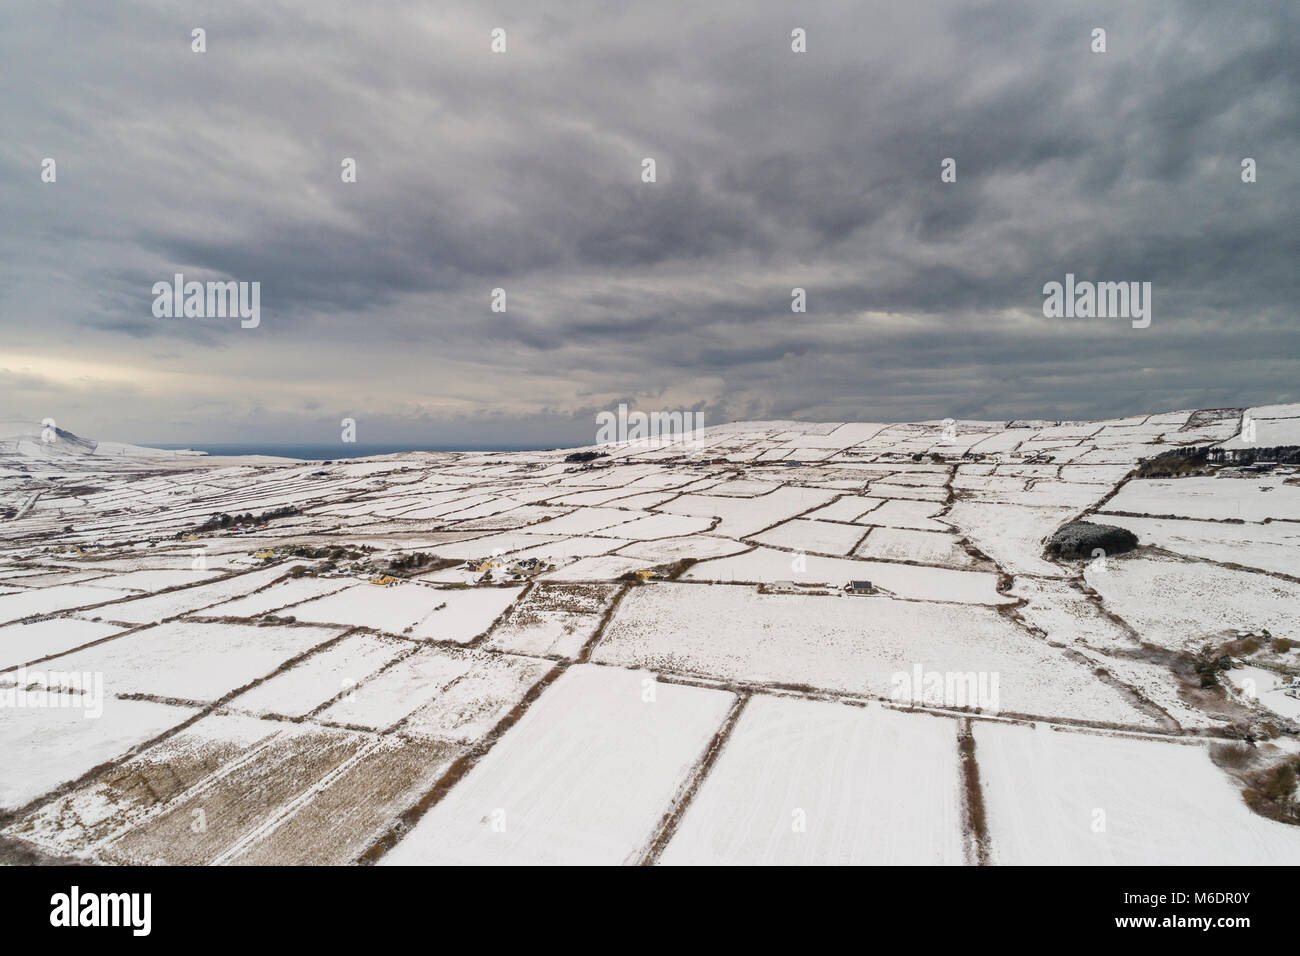 Aerial View of Valentia Island, County Kerry, covered in snow during storm Emma. - Stock Image